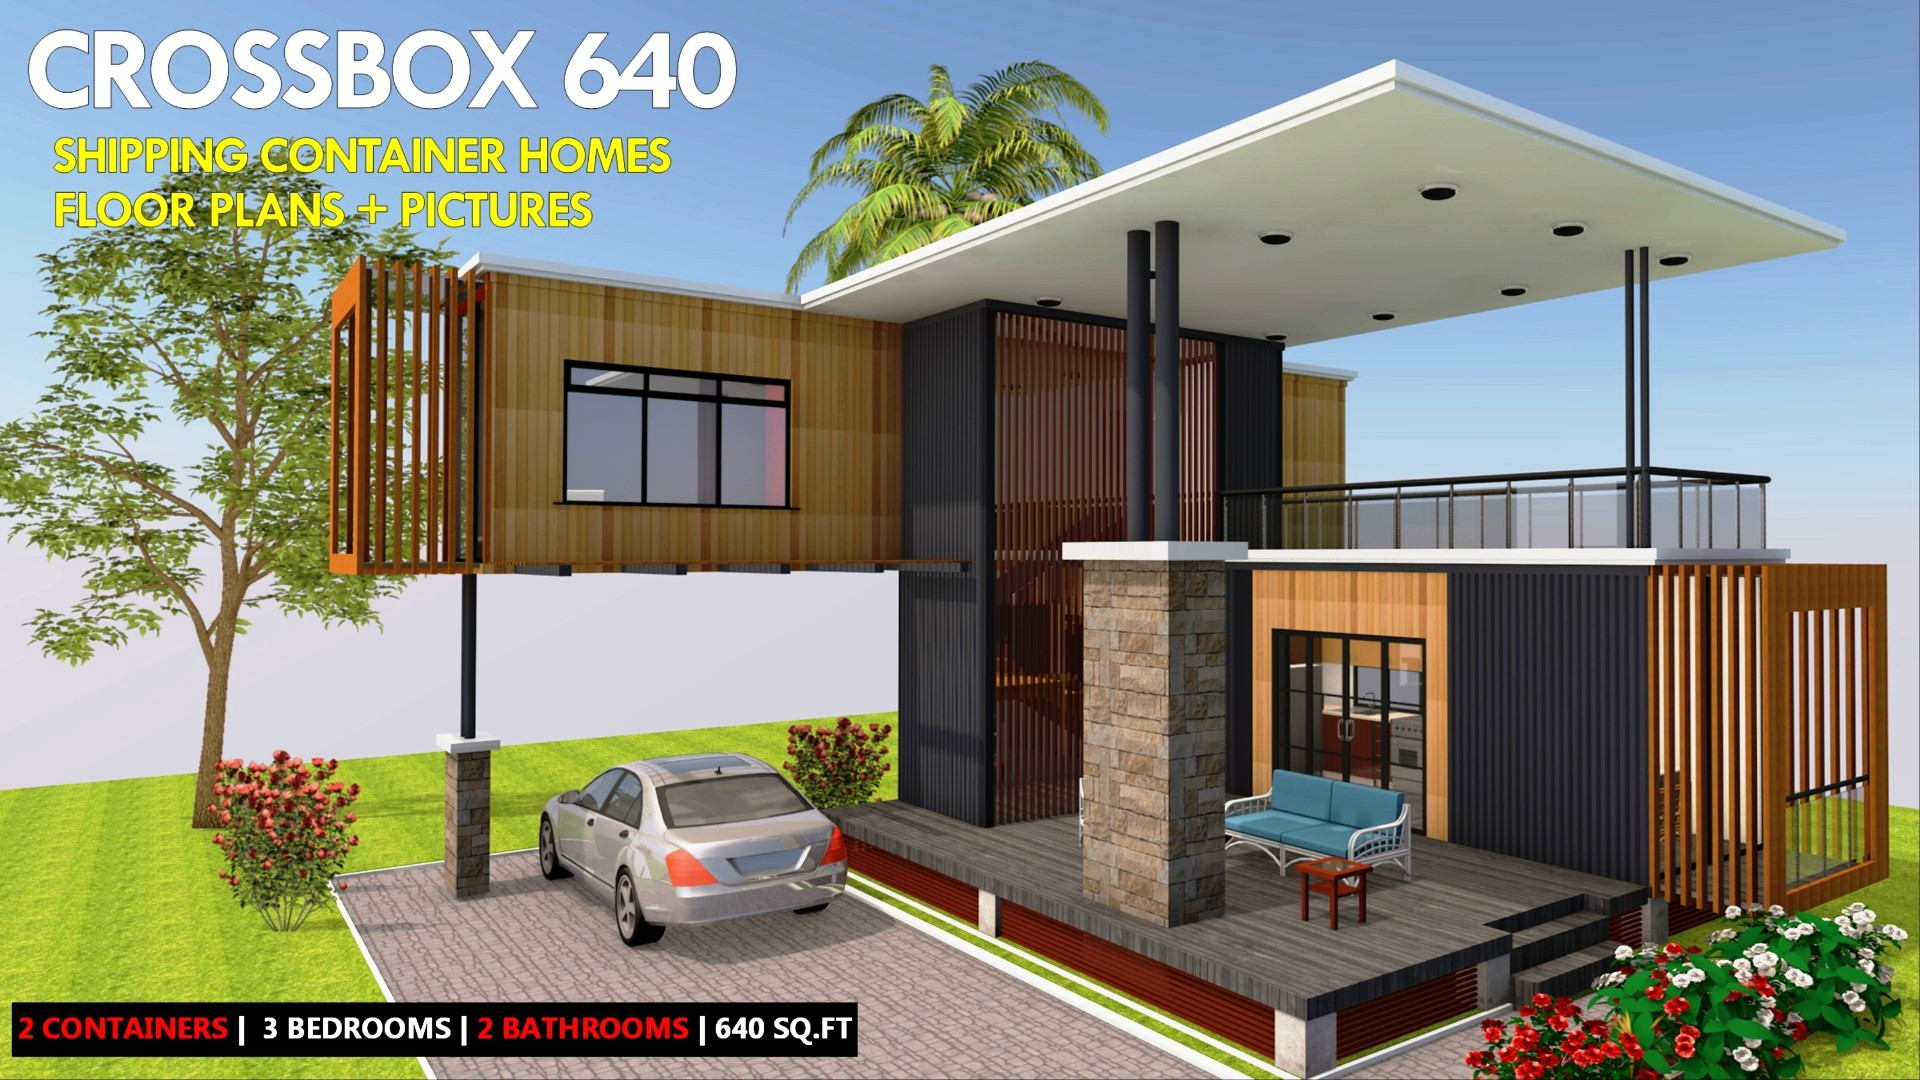 ways-to-save-money-when-building-a-shipping-container-house-CROSSBOX-640